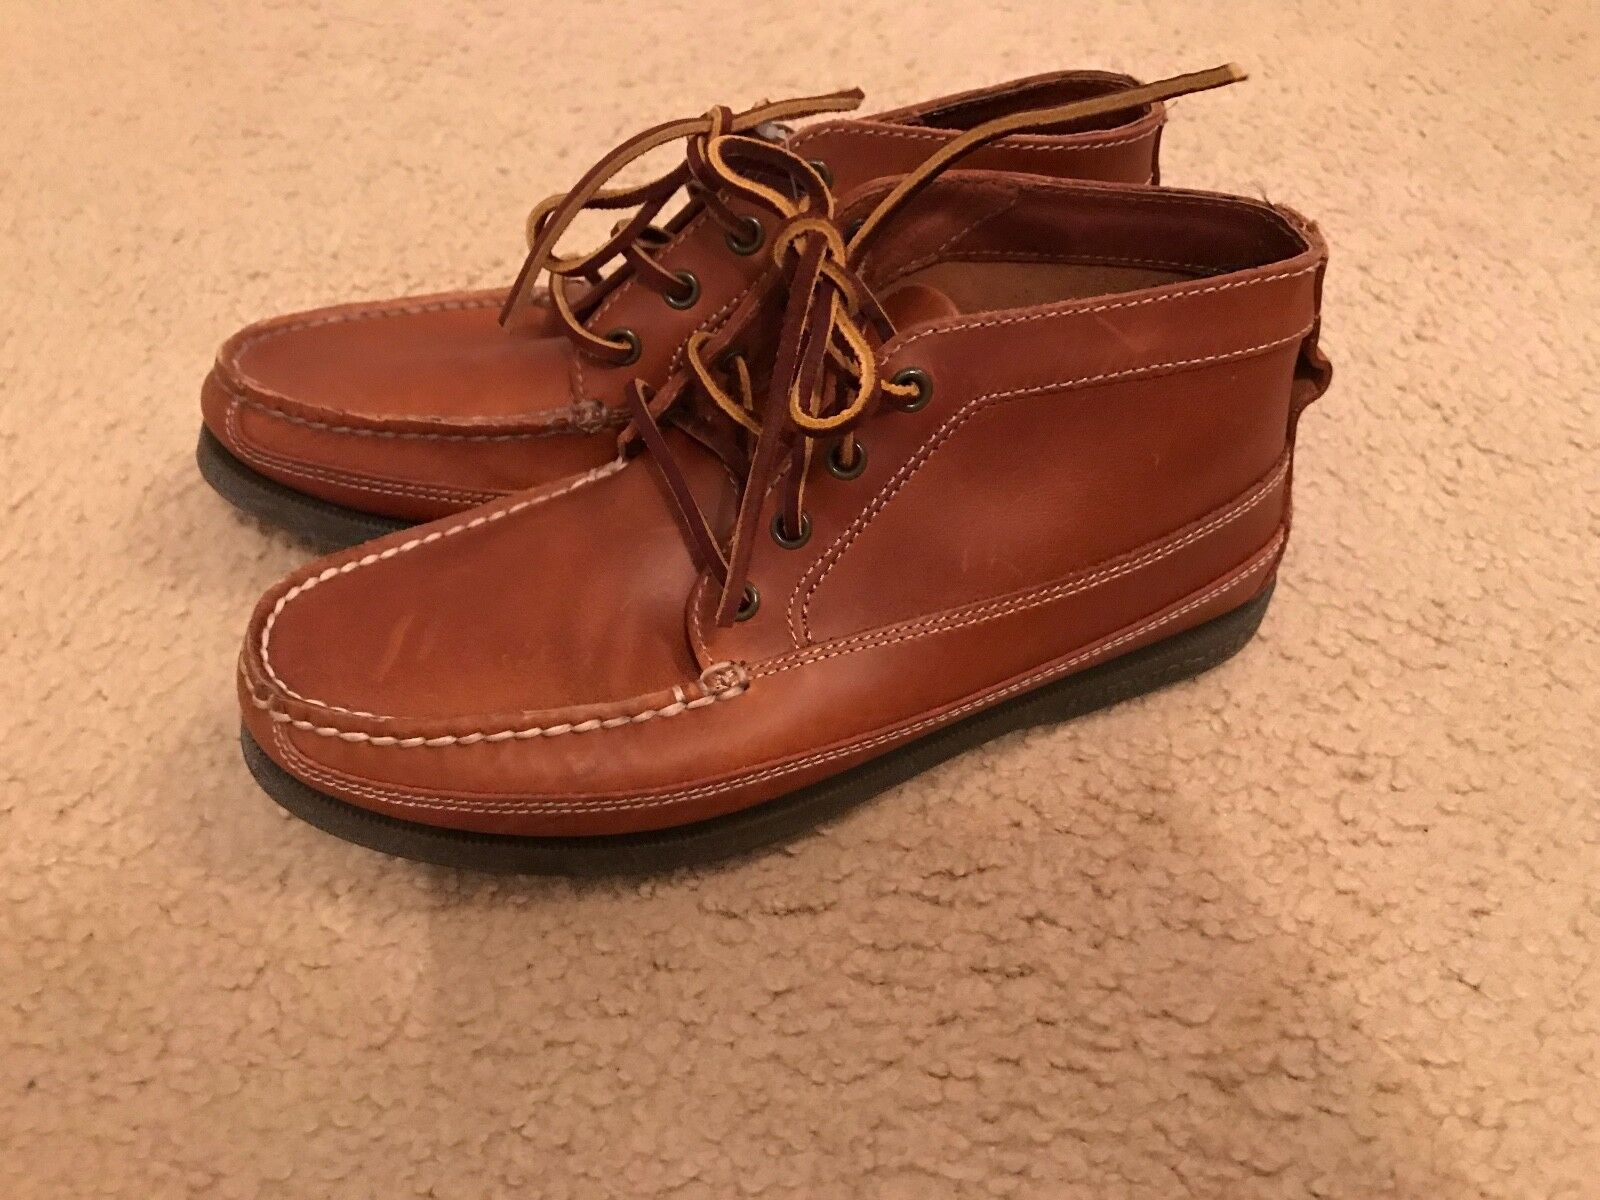 SPERRY TOP-SIDER FOR JCREW CHUKKA ANKLE BOOTS SIZE 8 BROWN